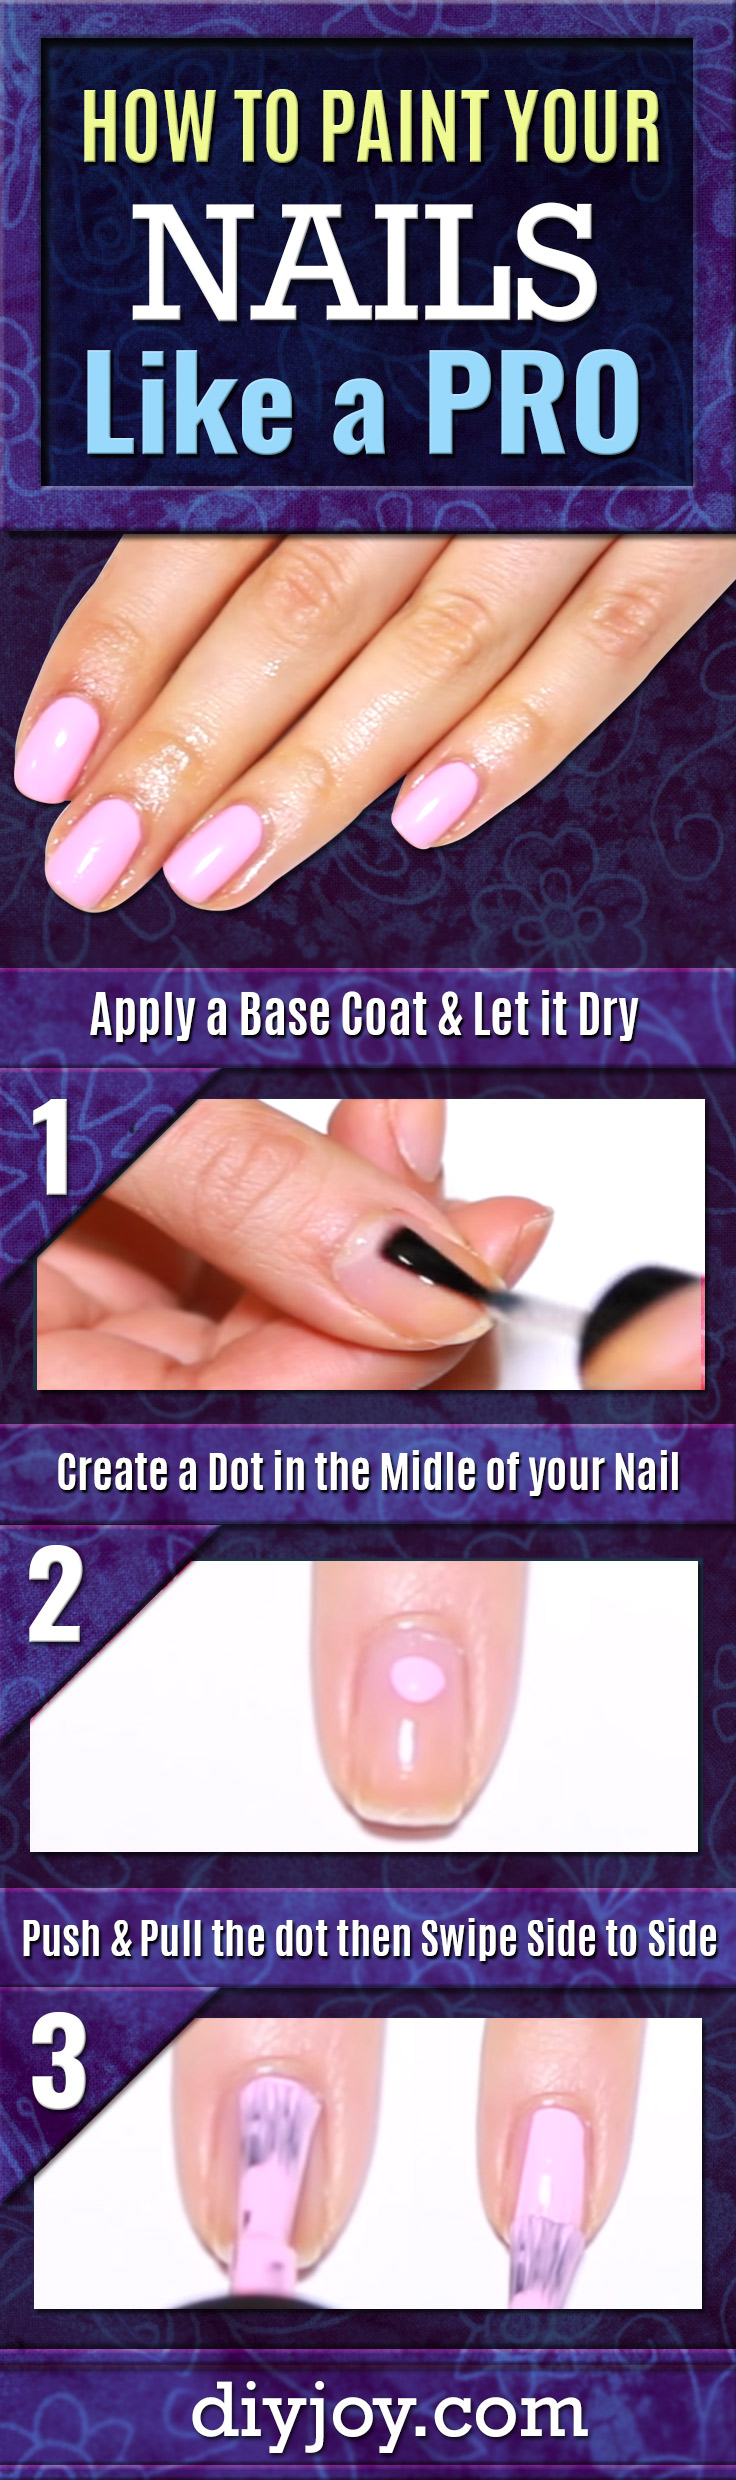 She Shows You How Paint Your Nails Like A Pro With A Few Clever Tips ...